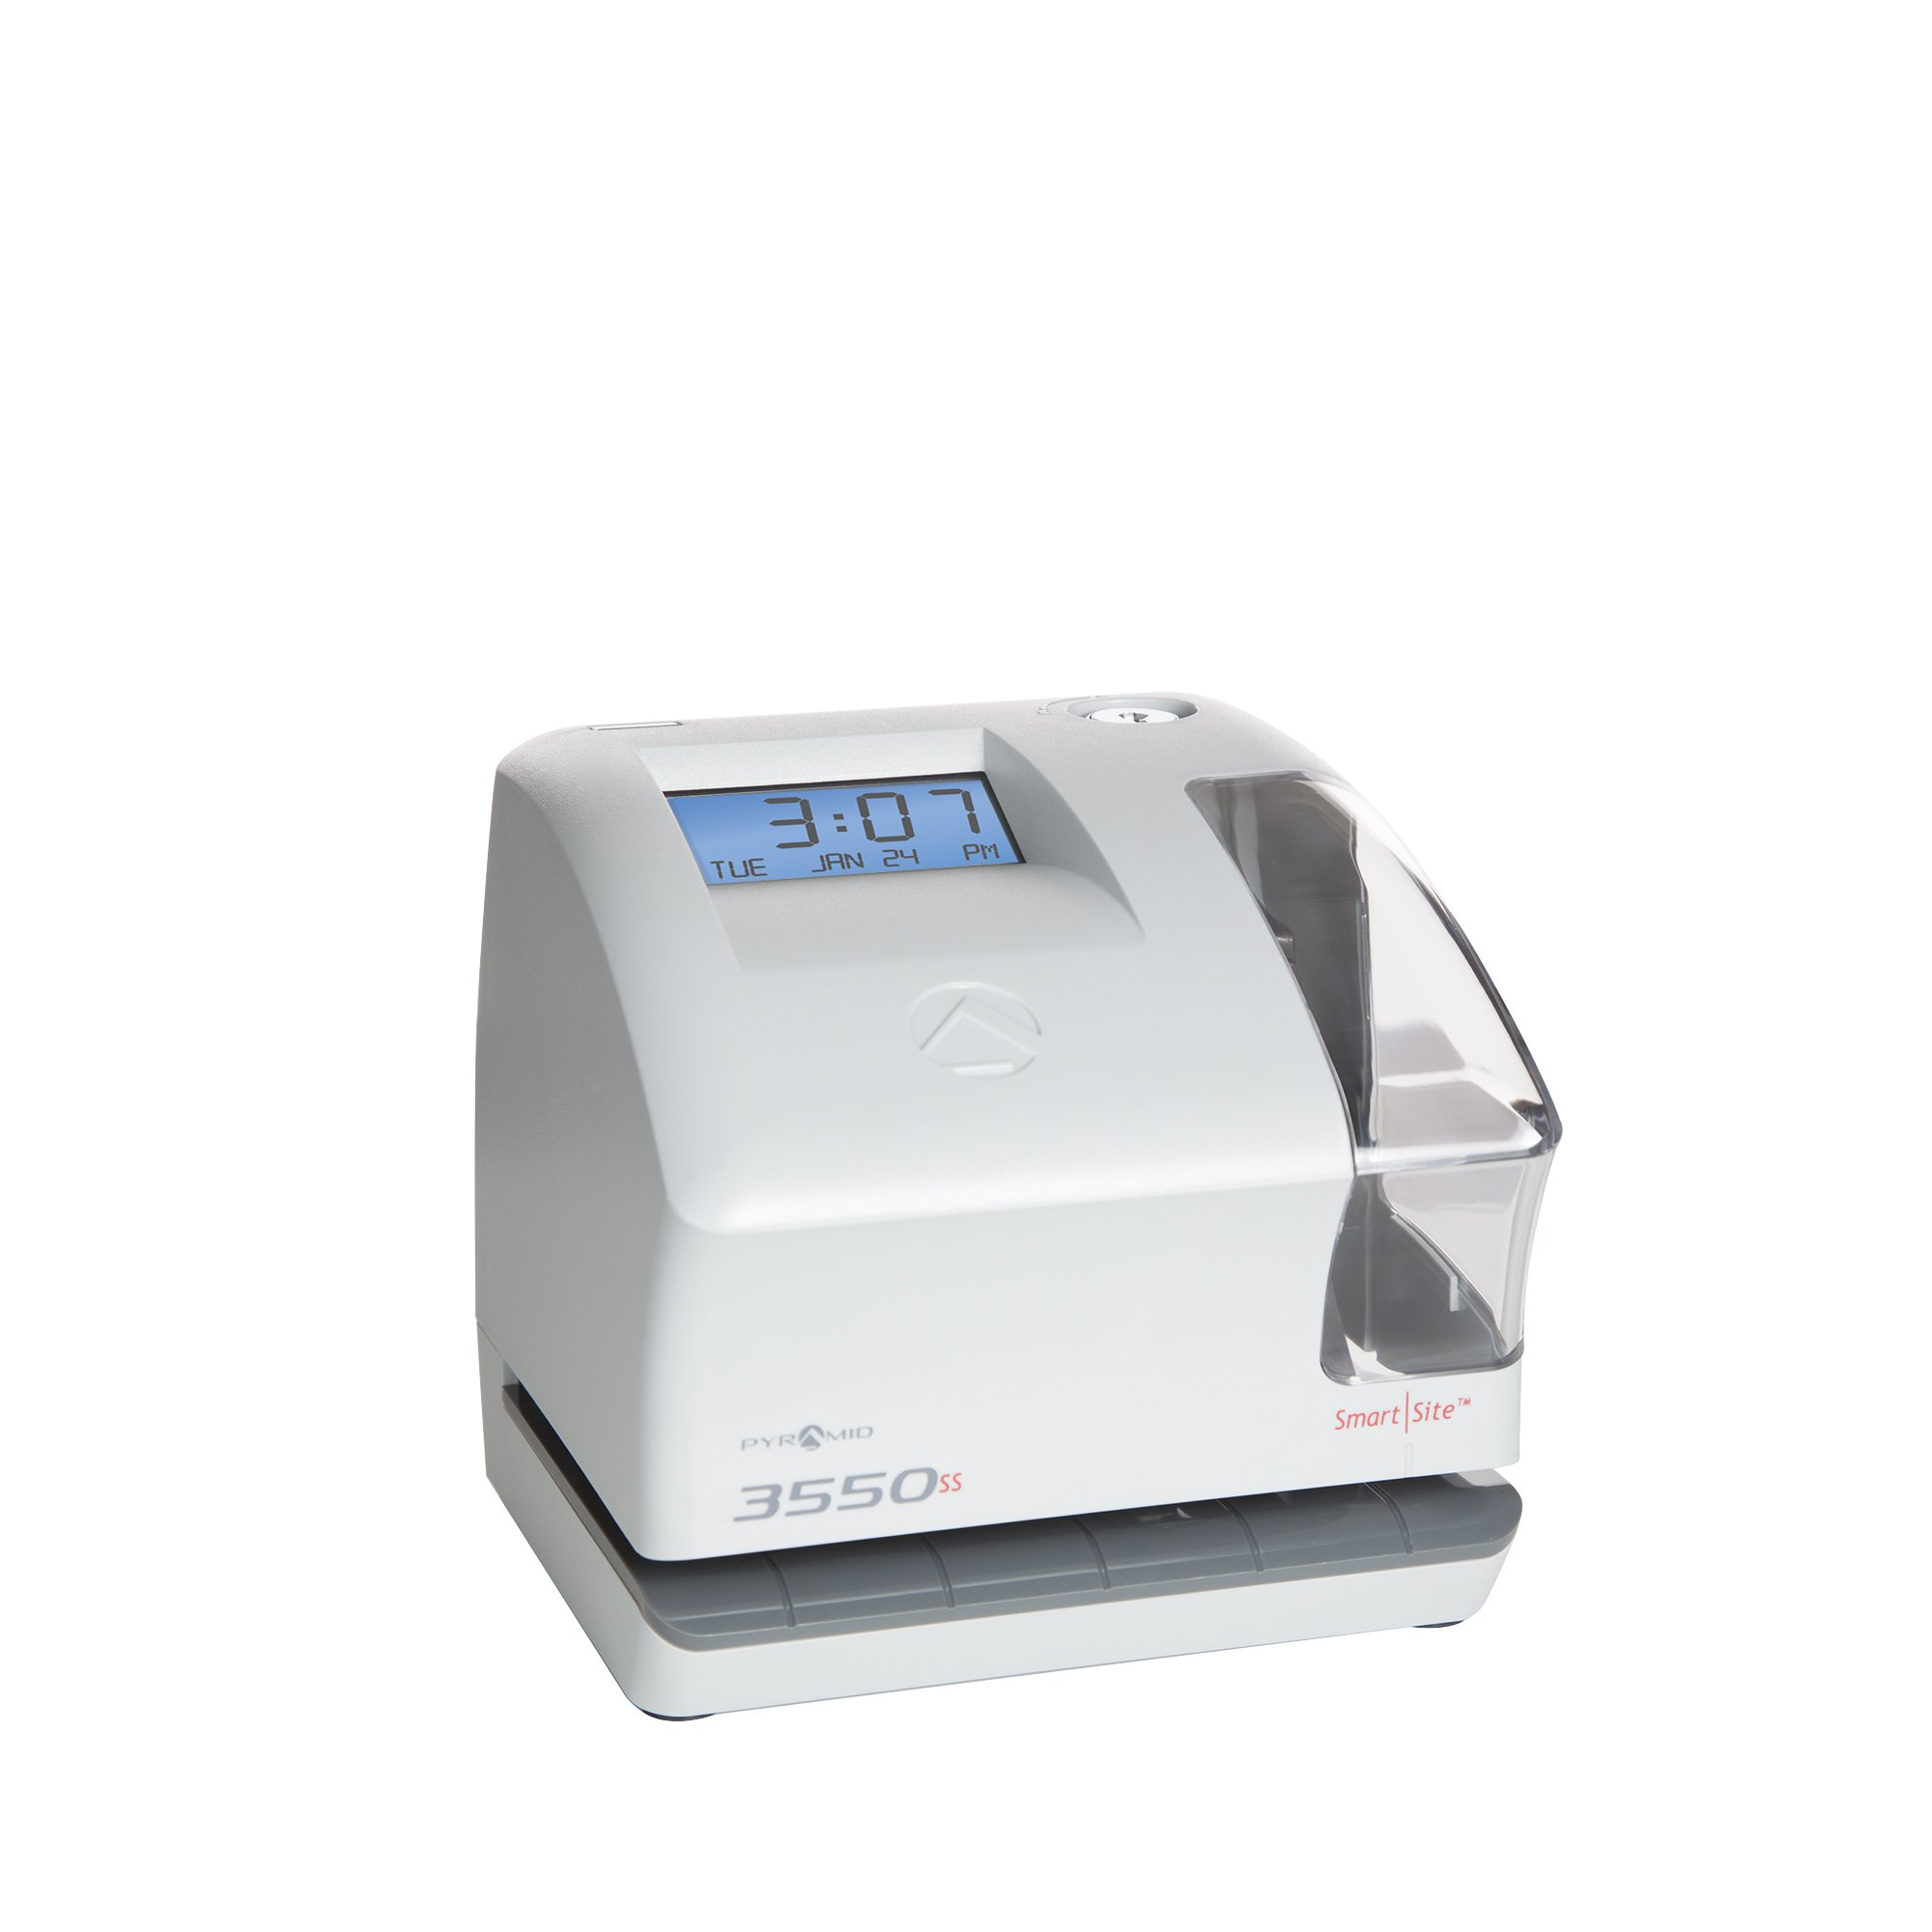 Pyramid 3550ss SmartSite Time Clock and Document Stamp - Made in USA by Pyramid Time Systems (Image #11)